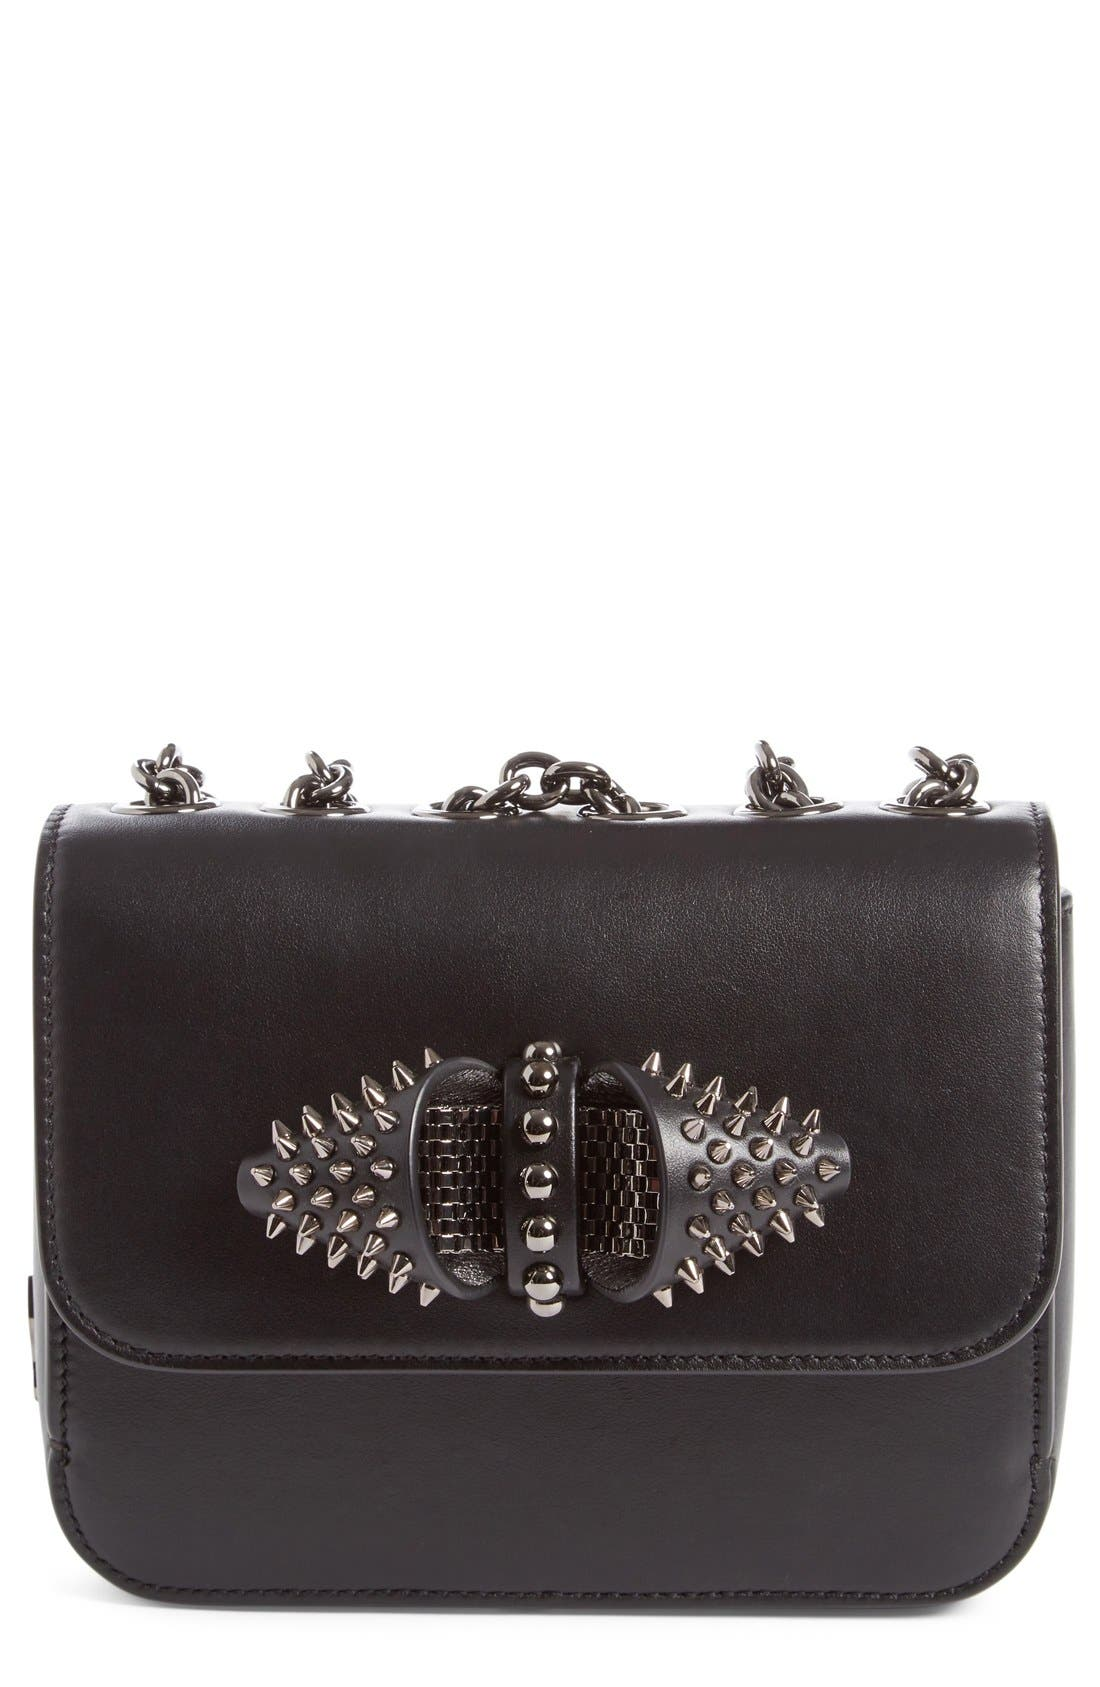 Alternate Image 1 Selected - Christian Louboutin 'Mini Sweet Charity' Spiked Calfskin Shoulder/Crossbody Bag